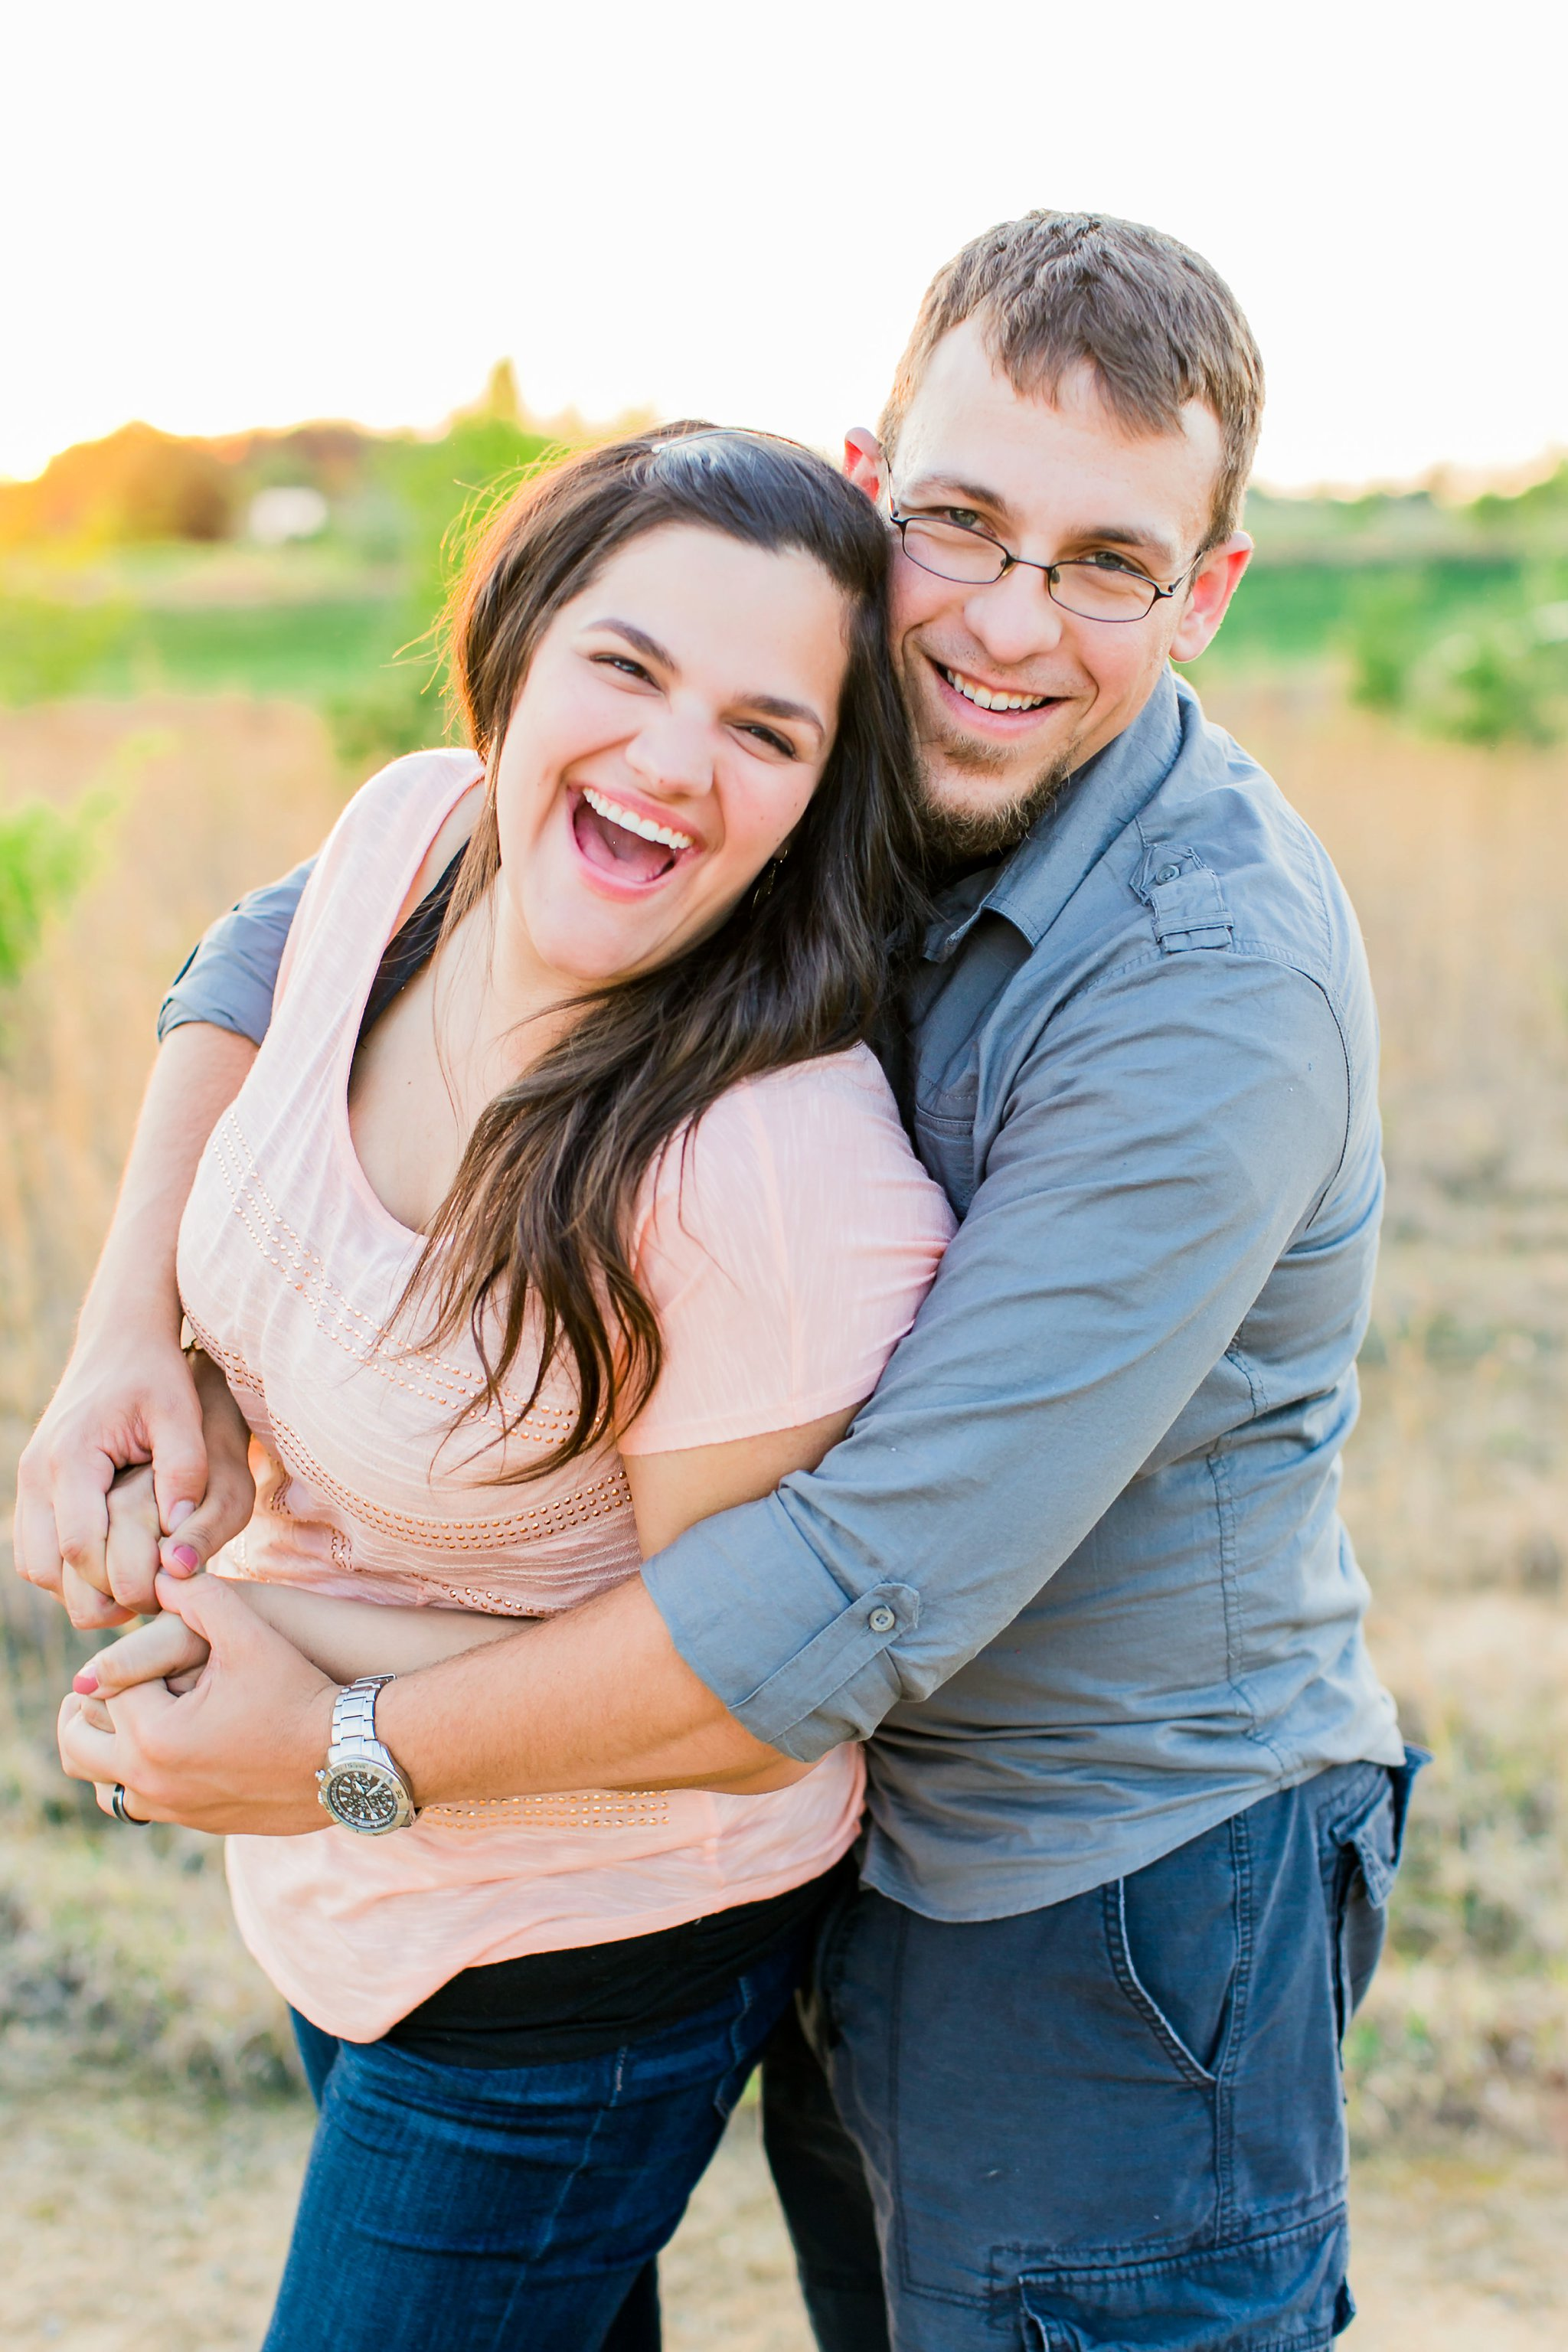 Fredericksburg Family Photographer Martins Megan Kelsey Photography-7645.jpg